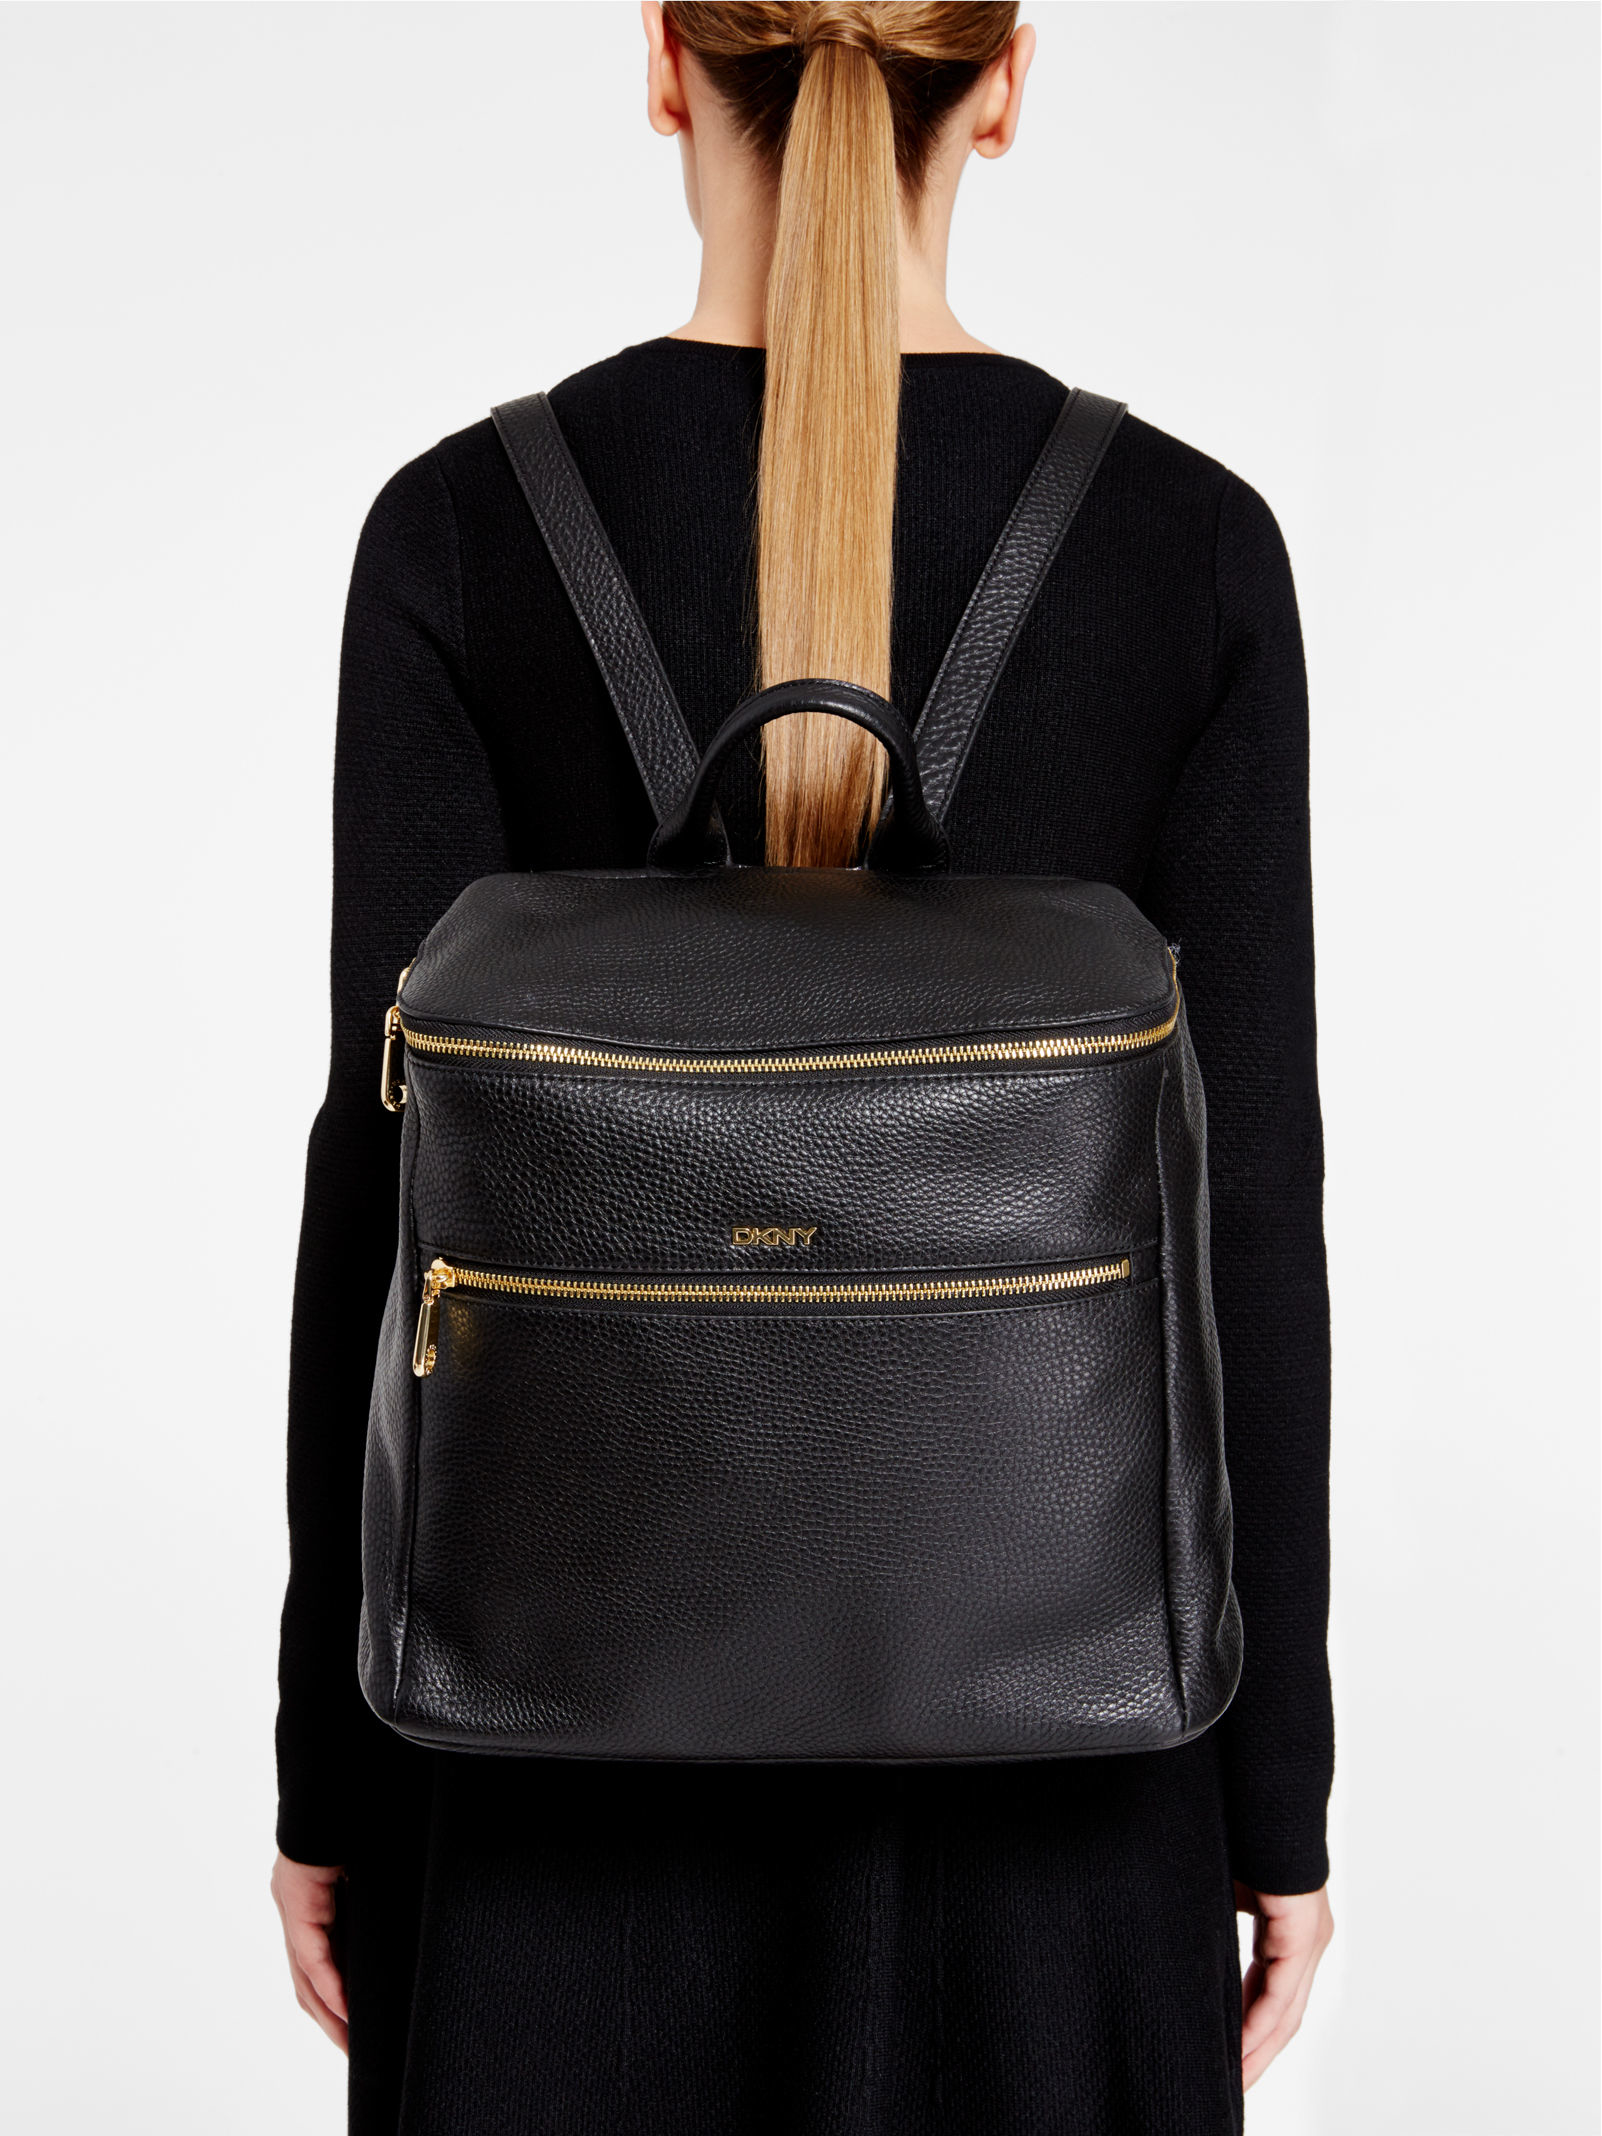 Dkny Tumbled Leather Backpack in Black | Lyst : dkny quilted rucksack - Adamdwight.com